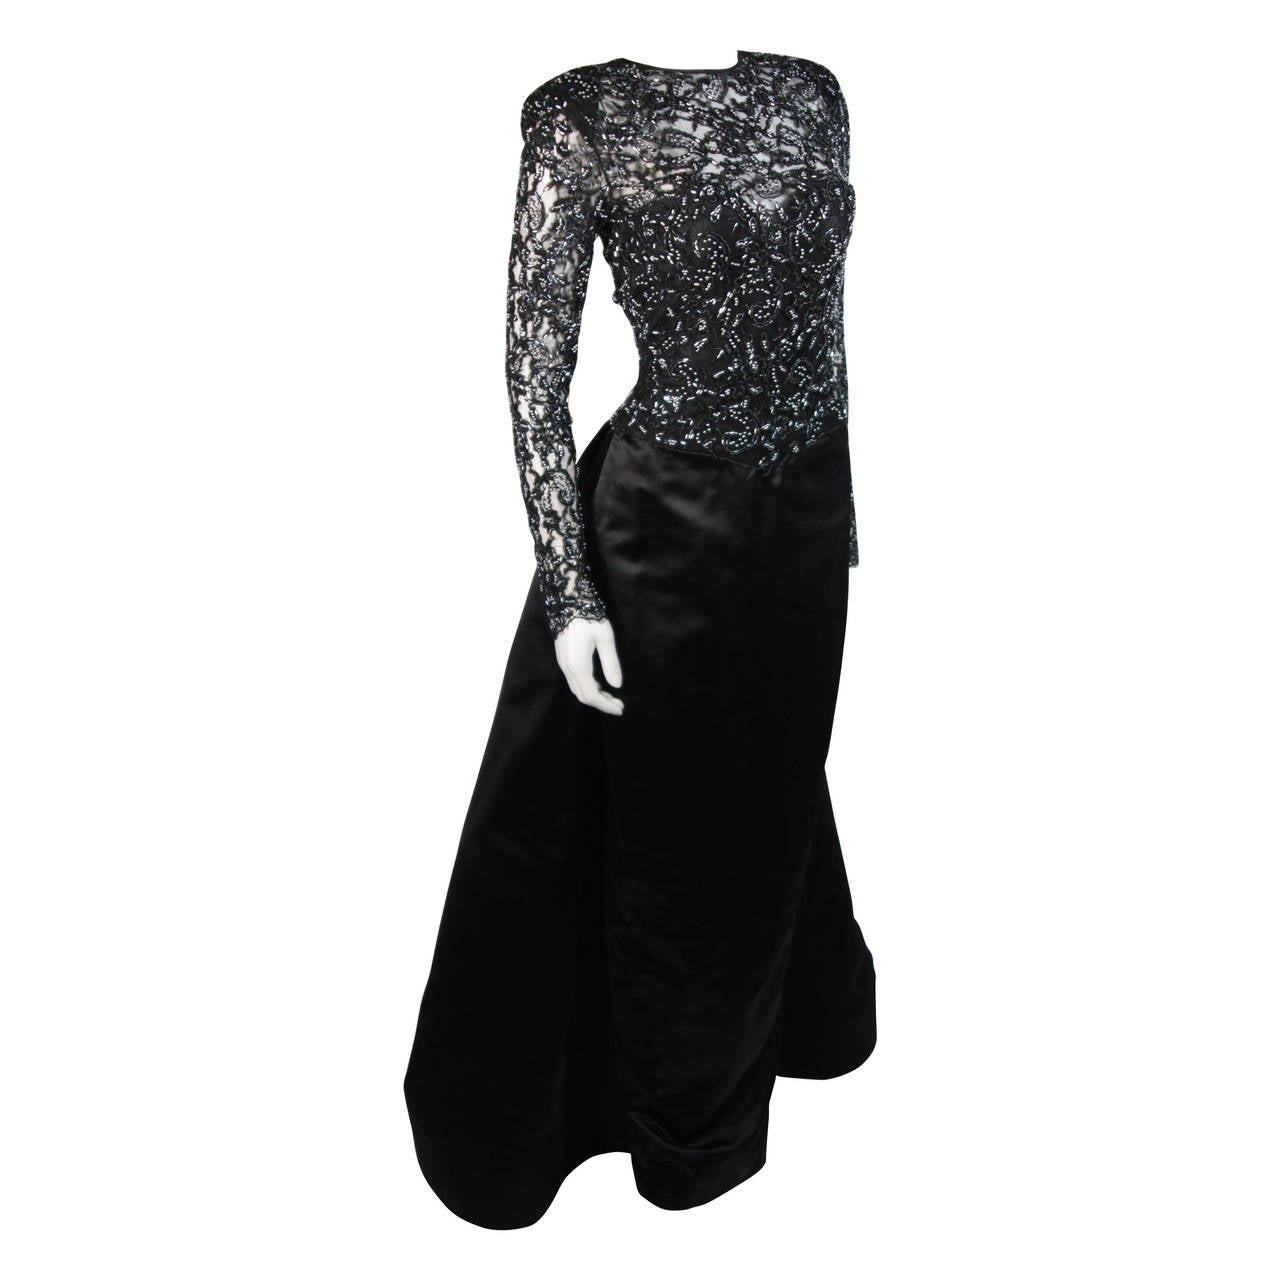 Vicky Tiel Black Embellished Lace Gown With Silk Skirt Size Small 1